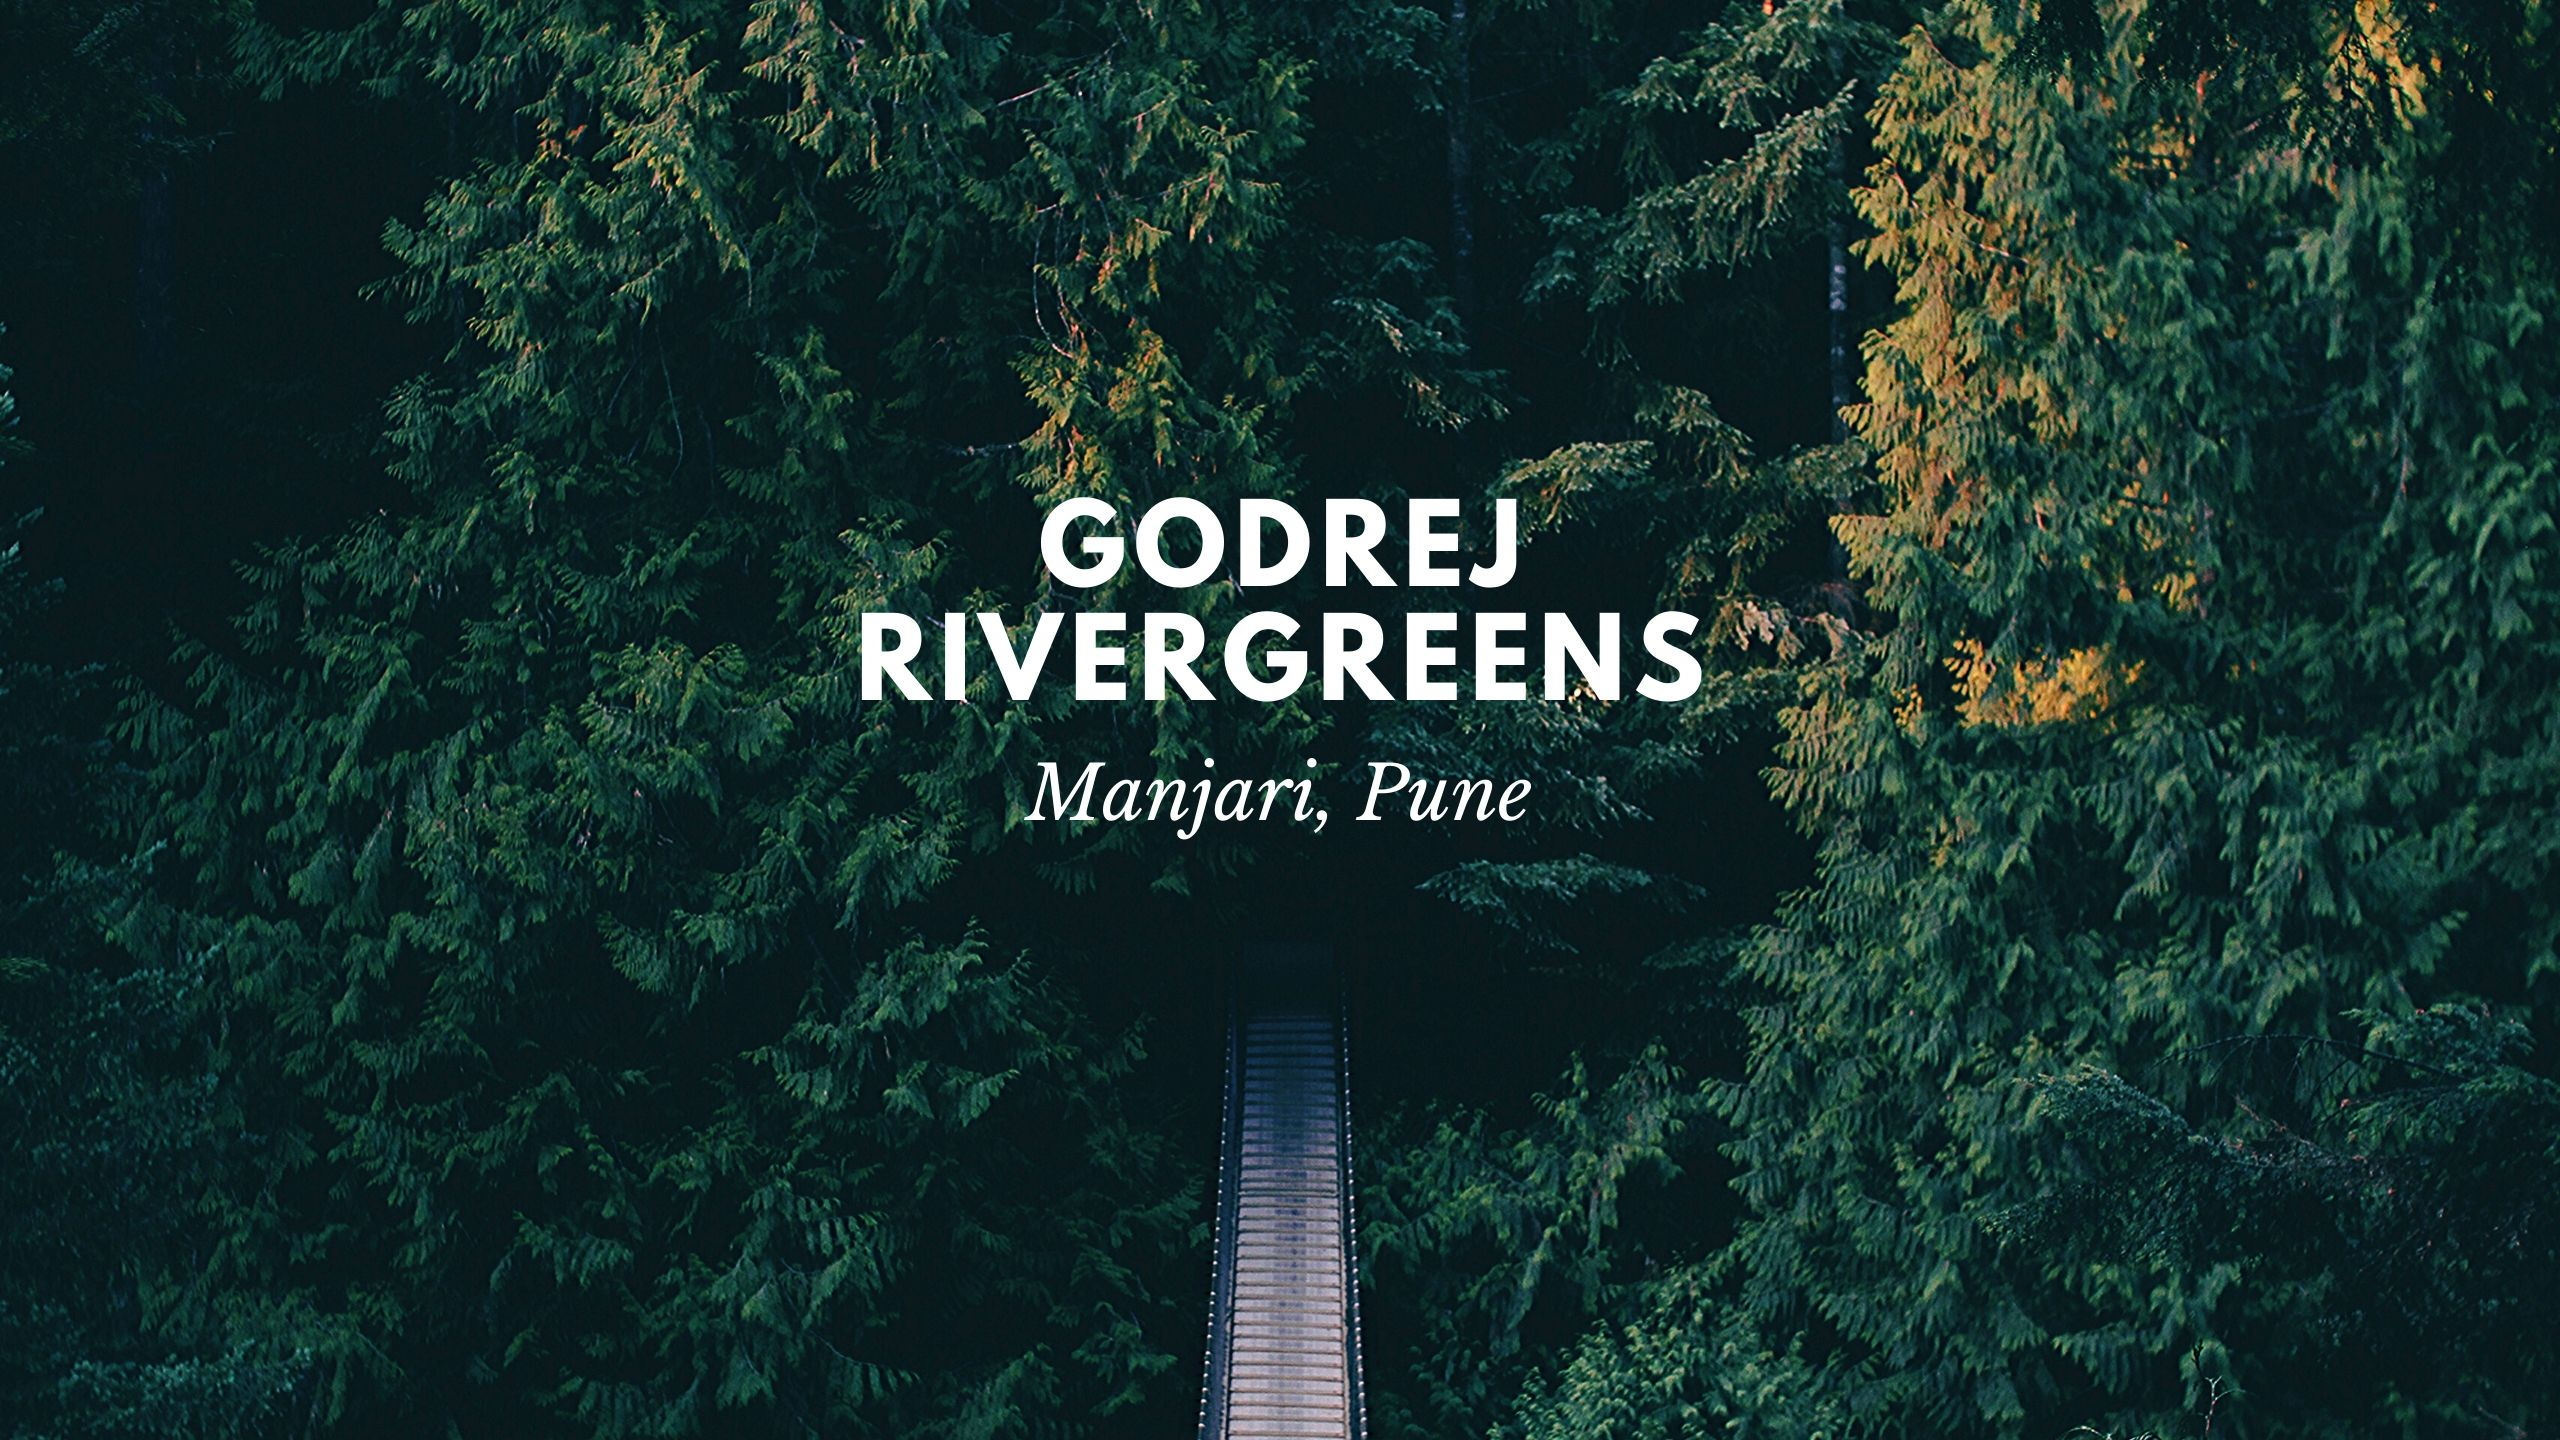 Godrej Rivergreens